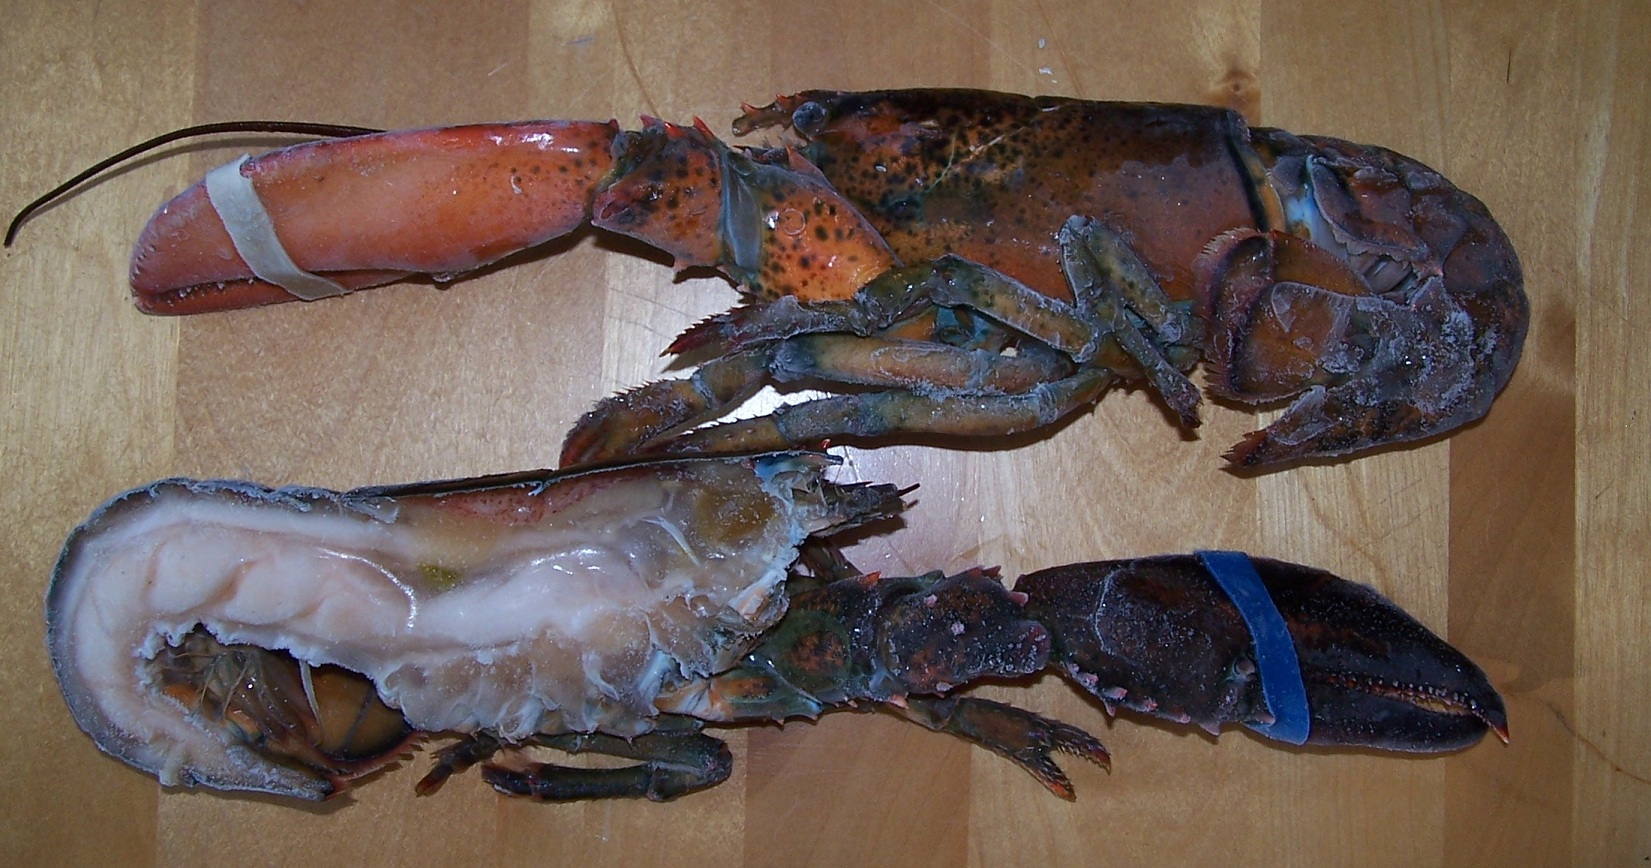 Split Lobster with Claw & Knuckle Meat Attached